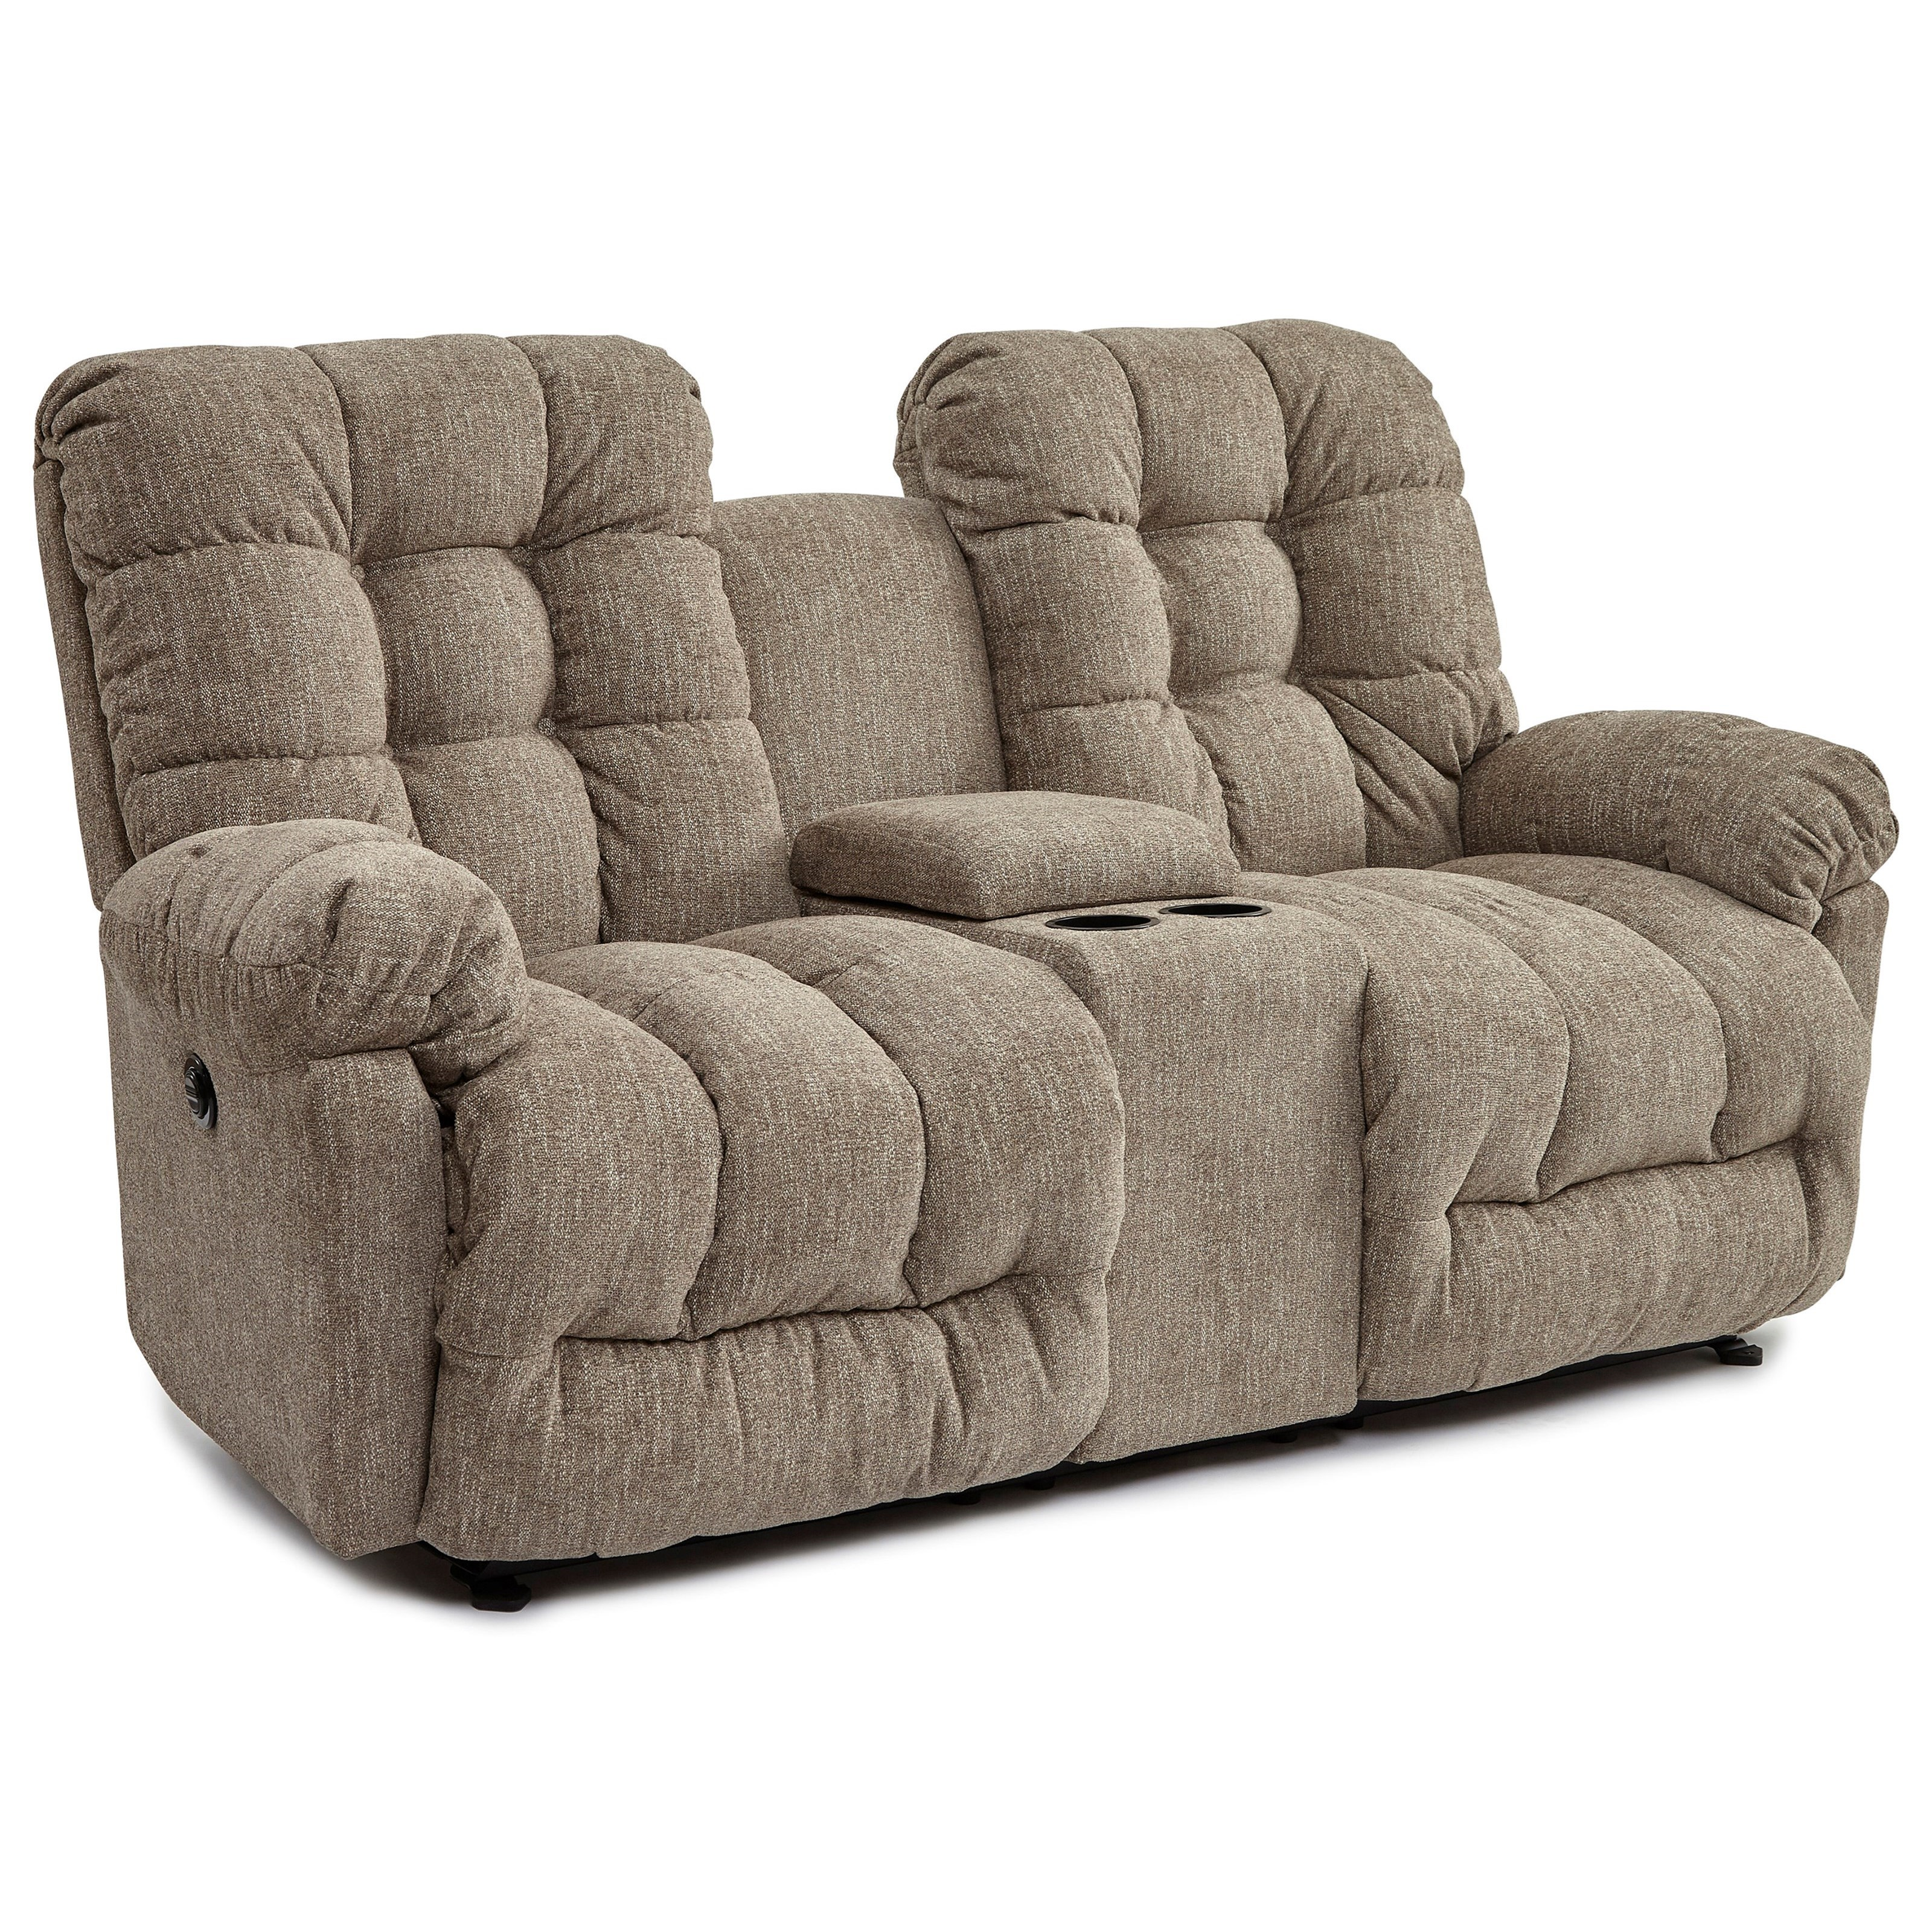 Power Rocking Reclining Loveseat w/ Console